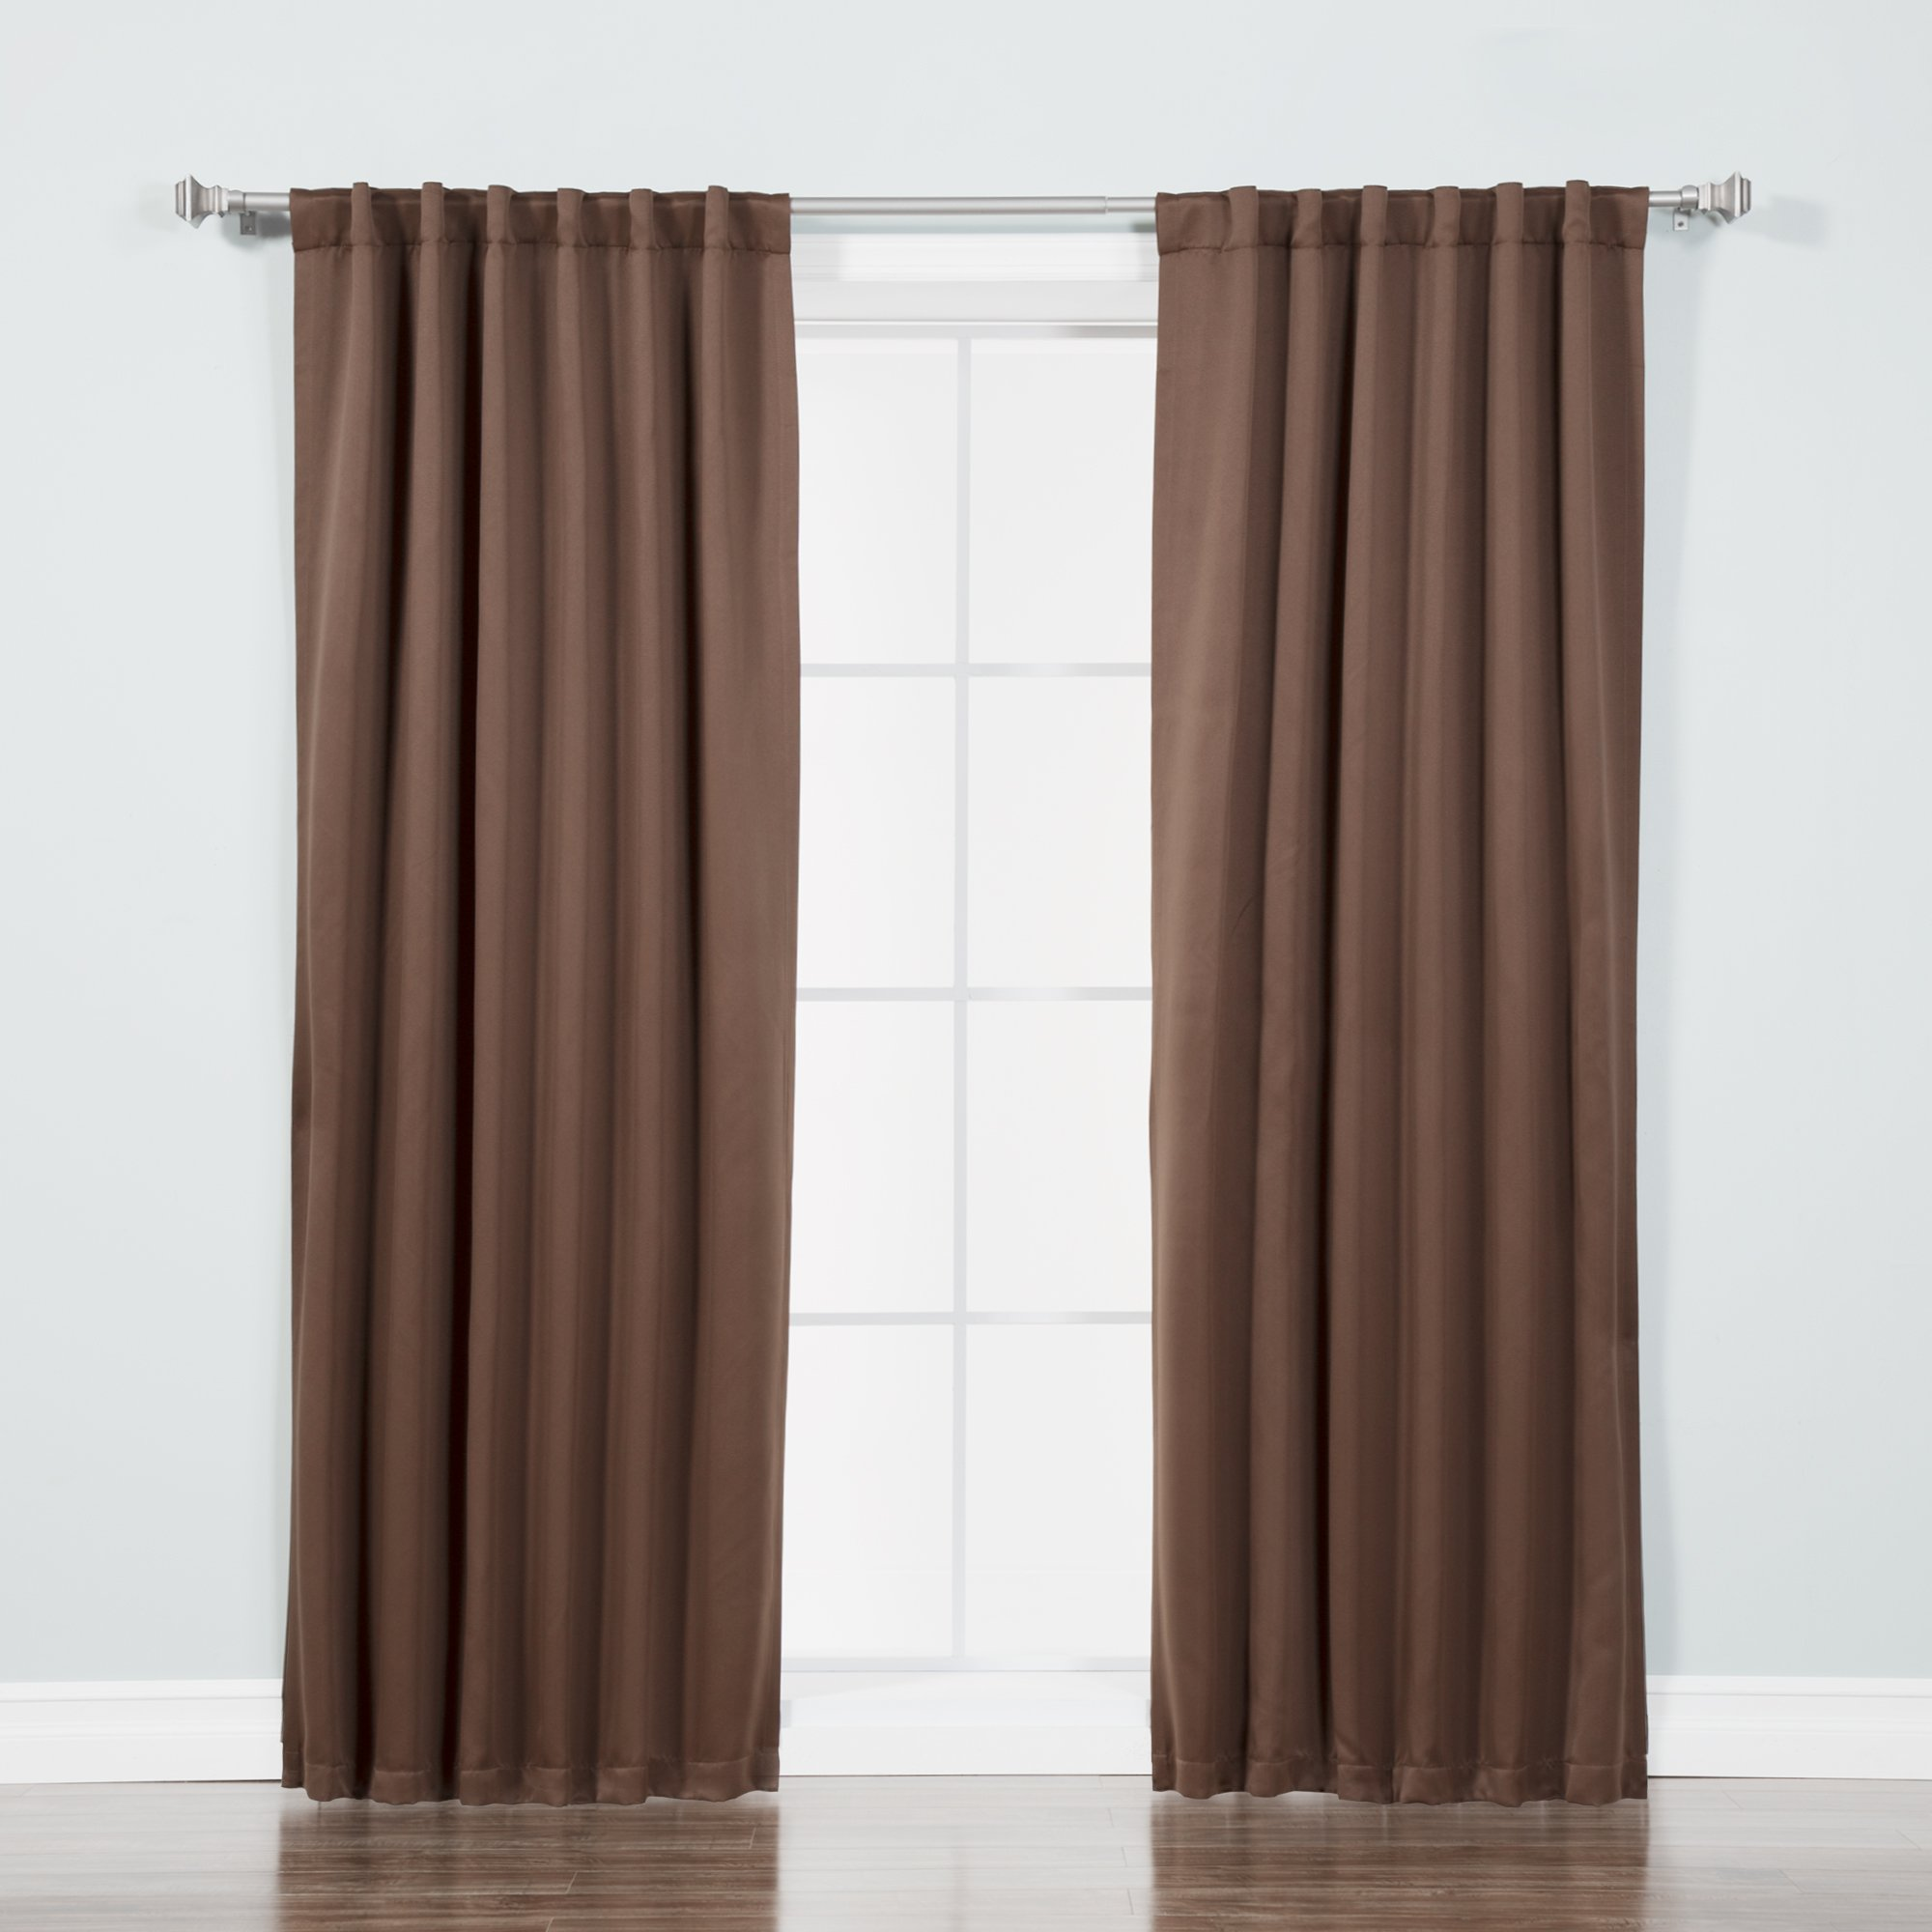 Best Home Fashion Thermal Insulated Blackout Curtains - Back Tab/Rod Pocket - Chocolate - 52'' W x 72'' L - (Set of 2 Panels)